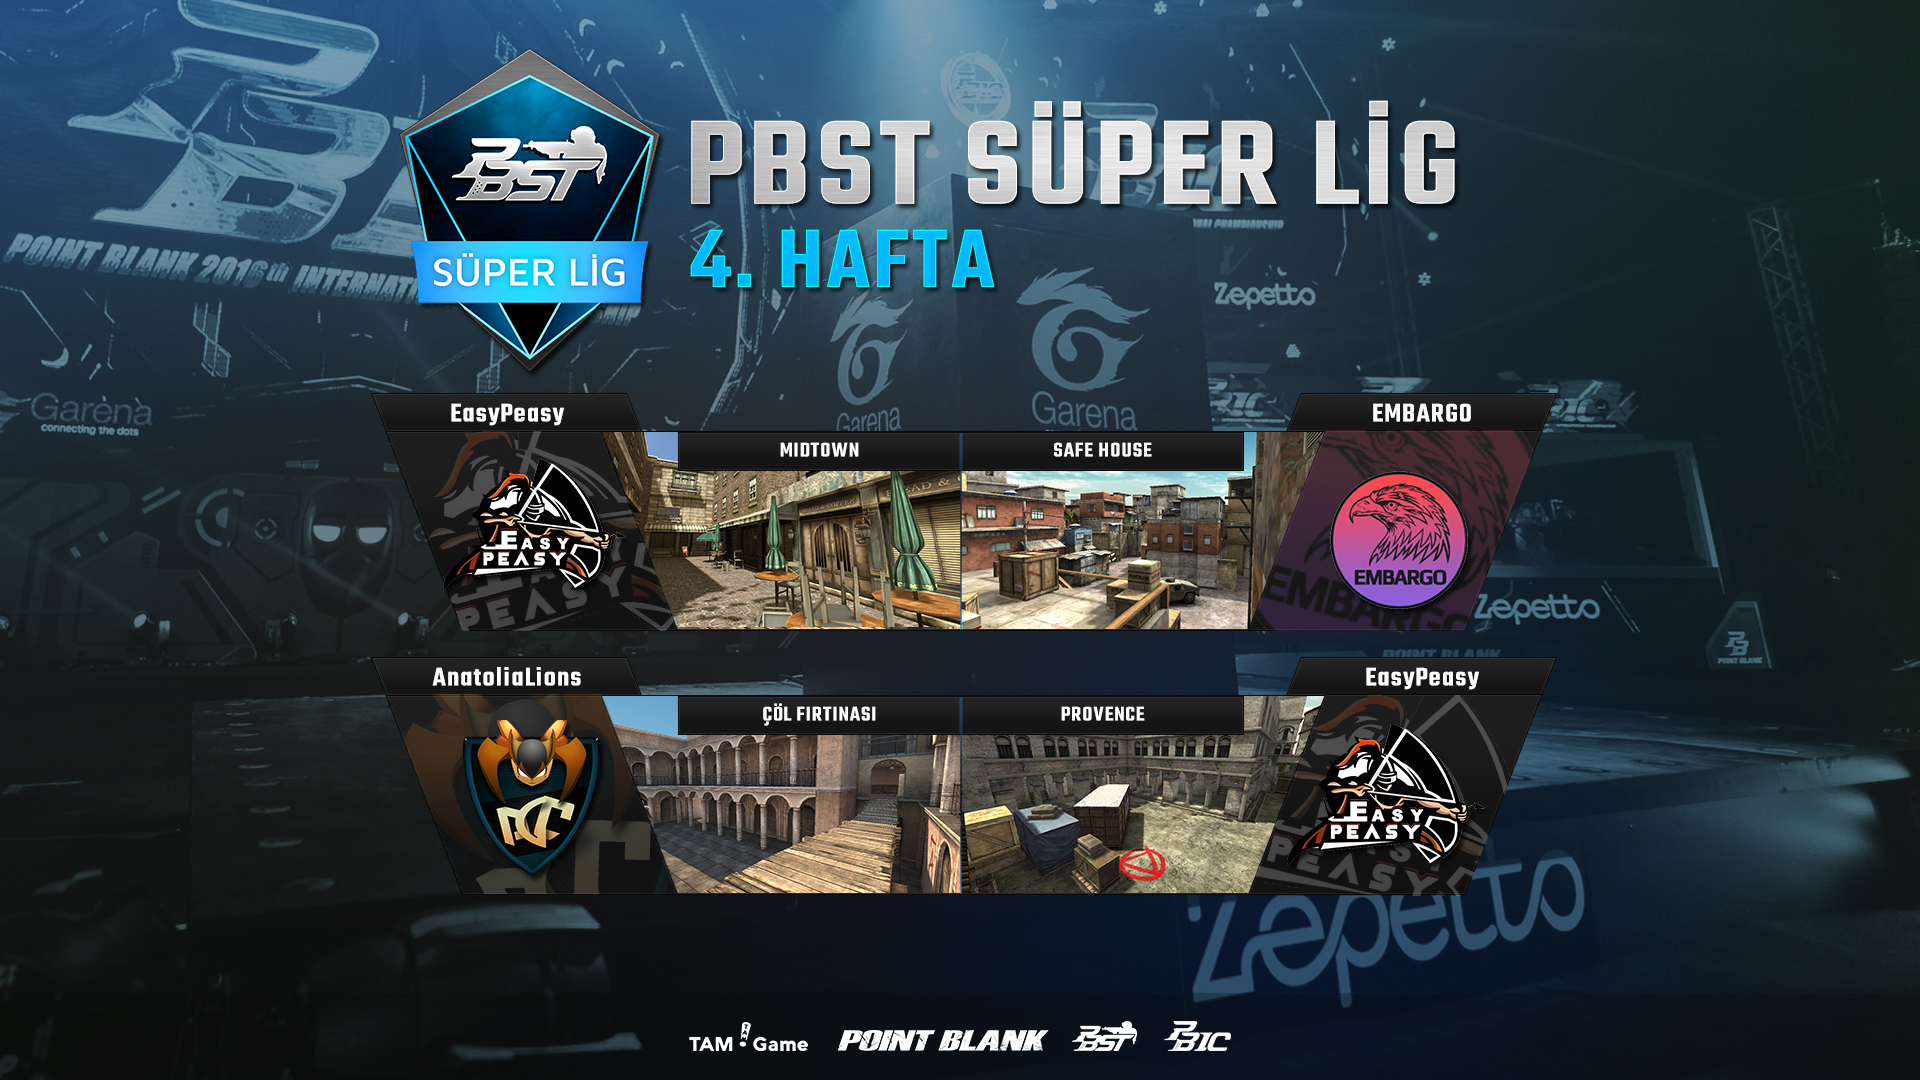 FBH_PBTV-Super-All-Matches-W4.jpg